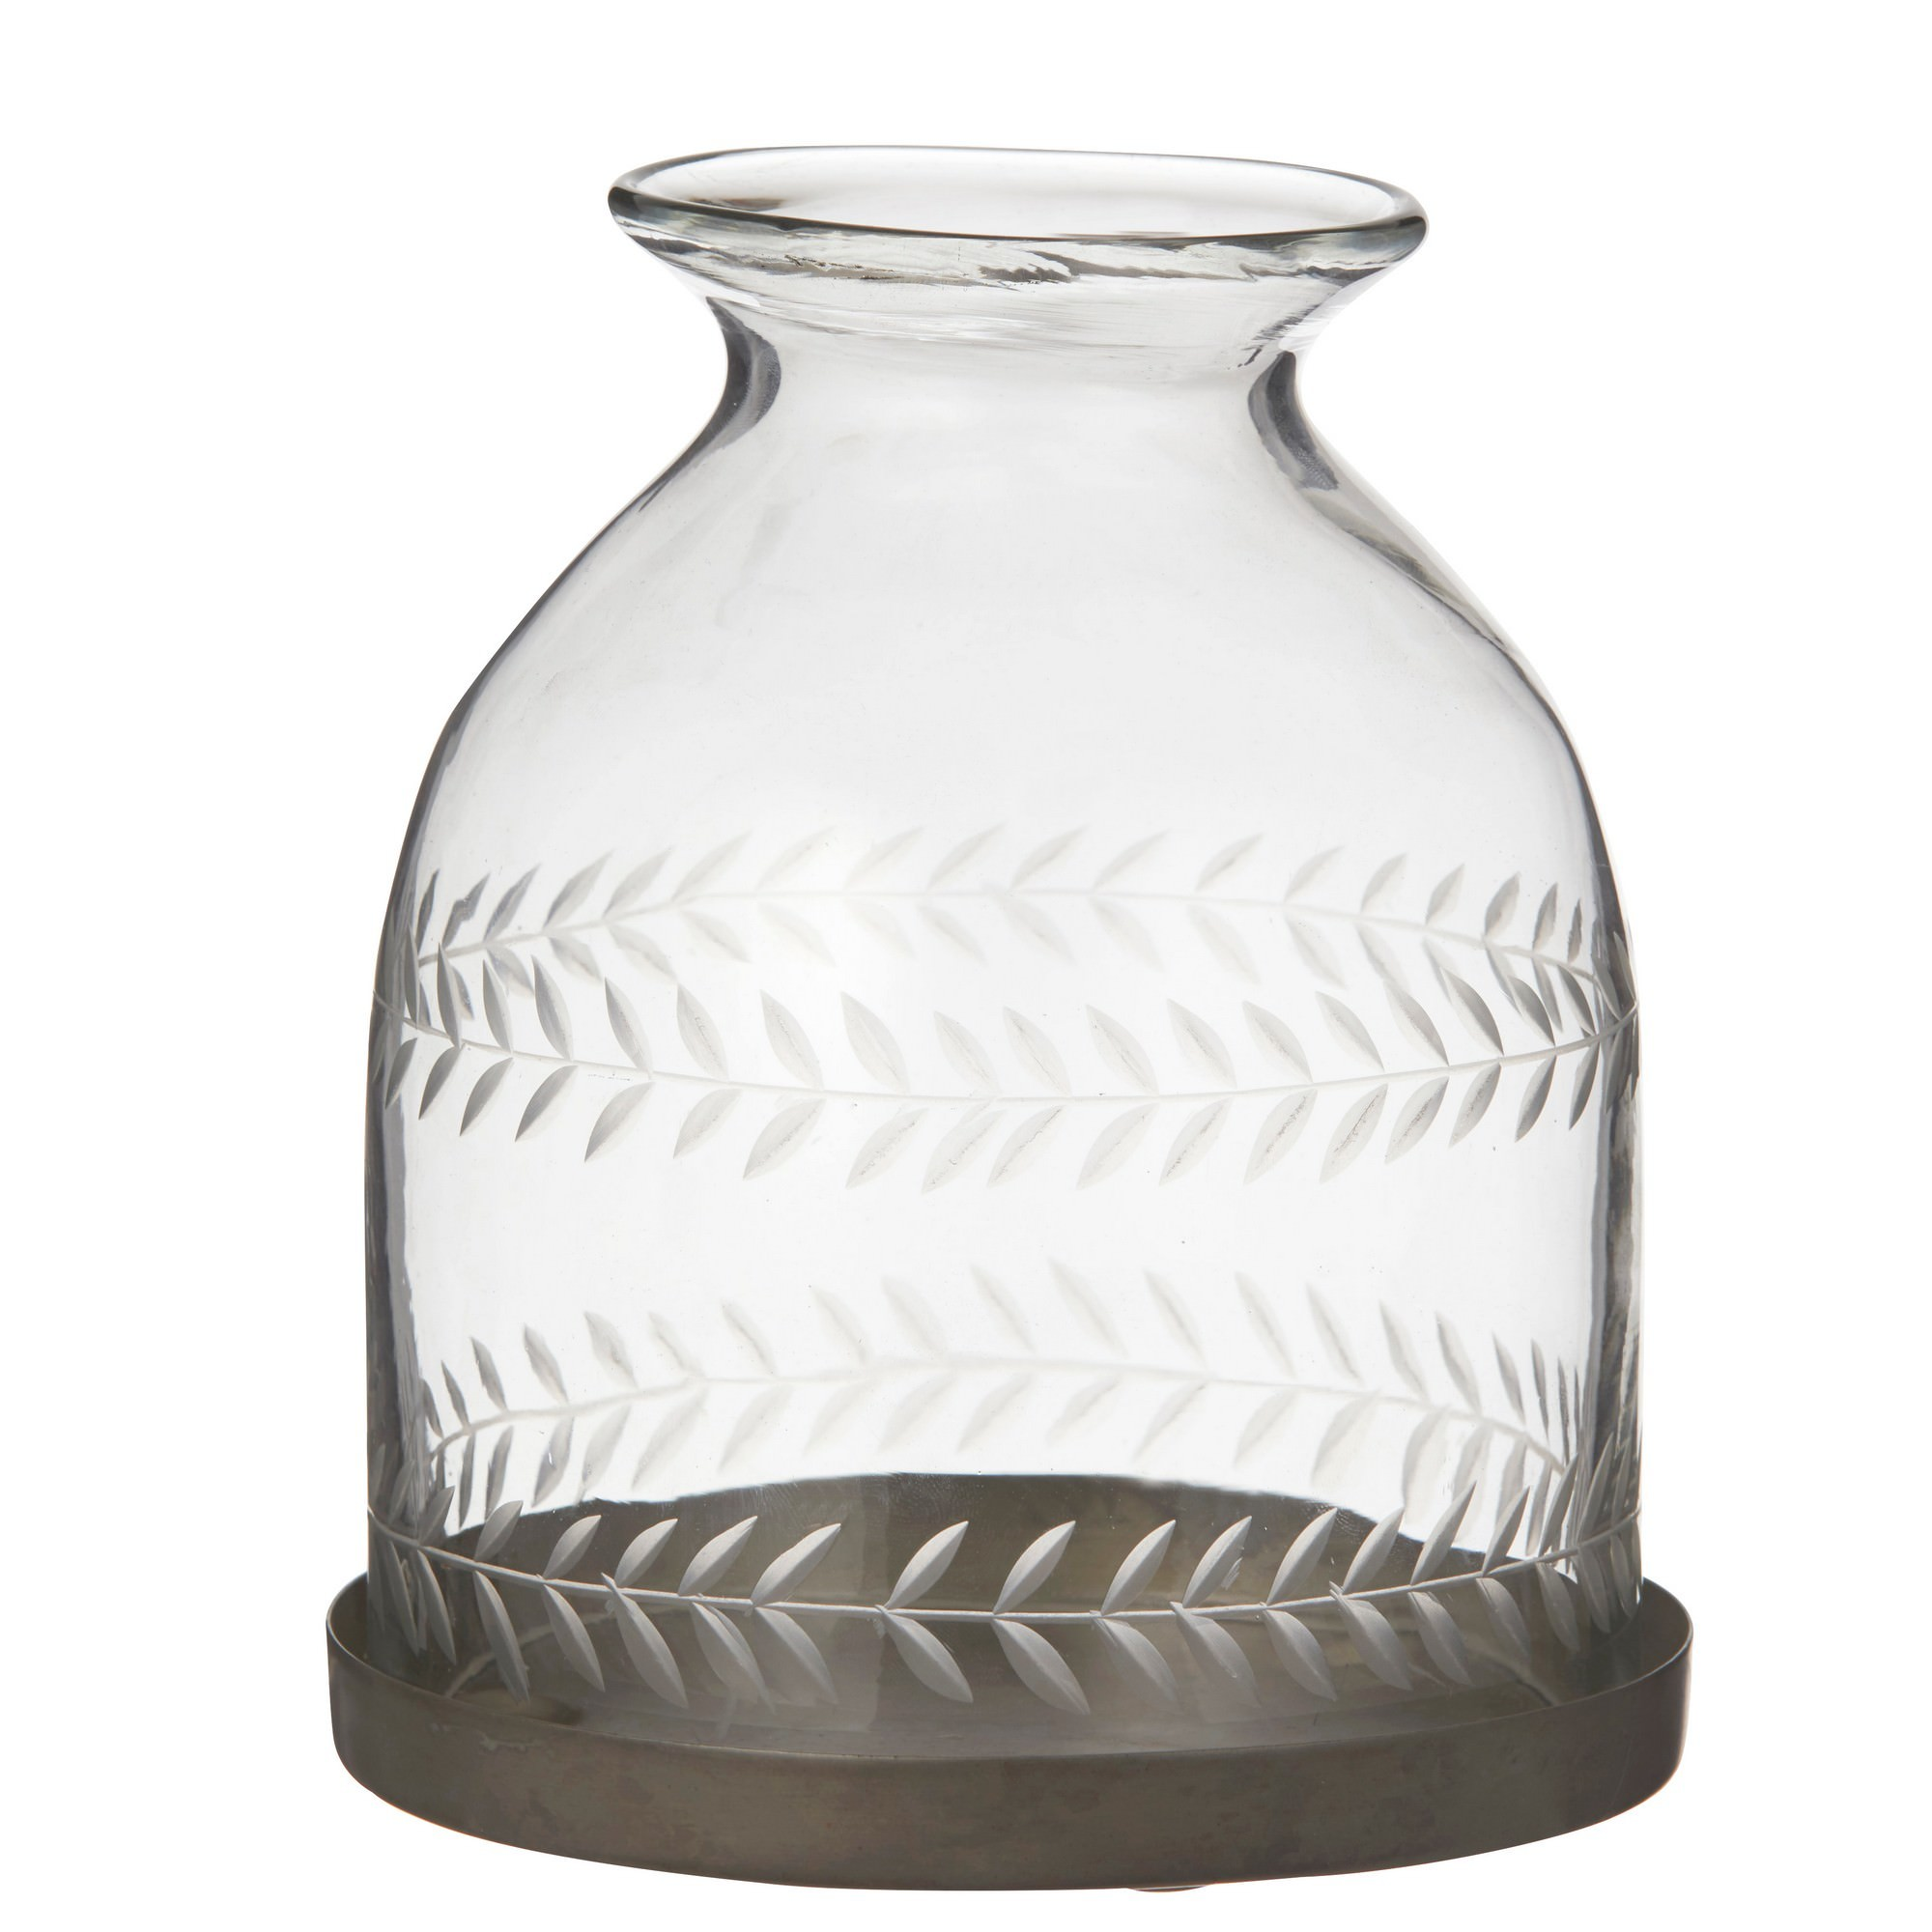 Baccarat Glass Dome Candle Holder / Cloche